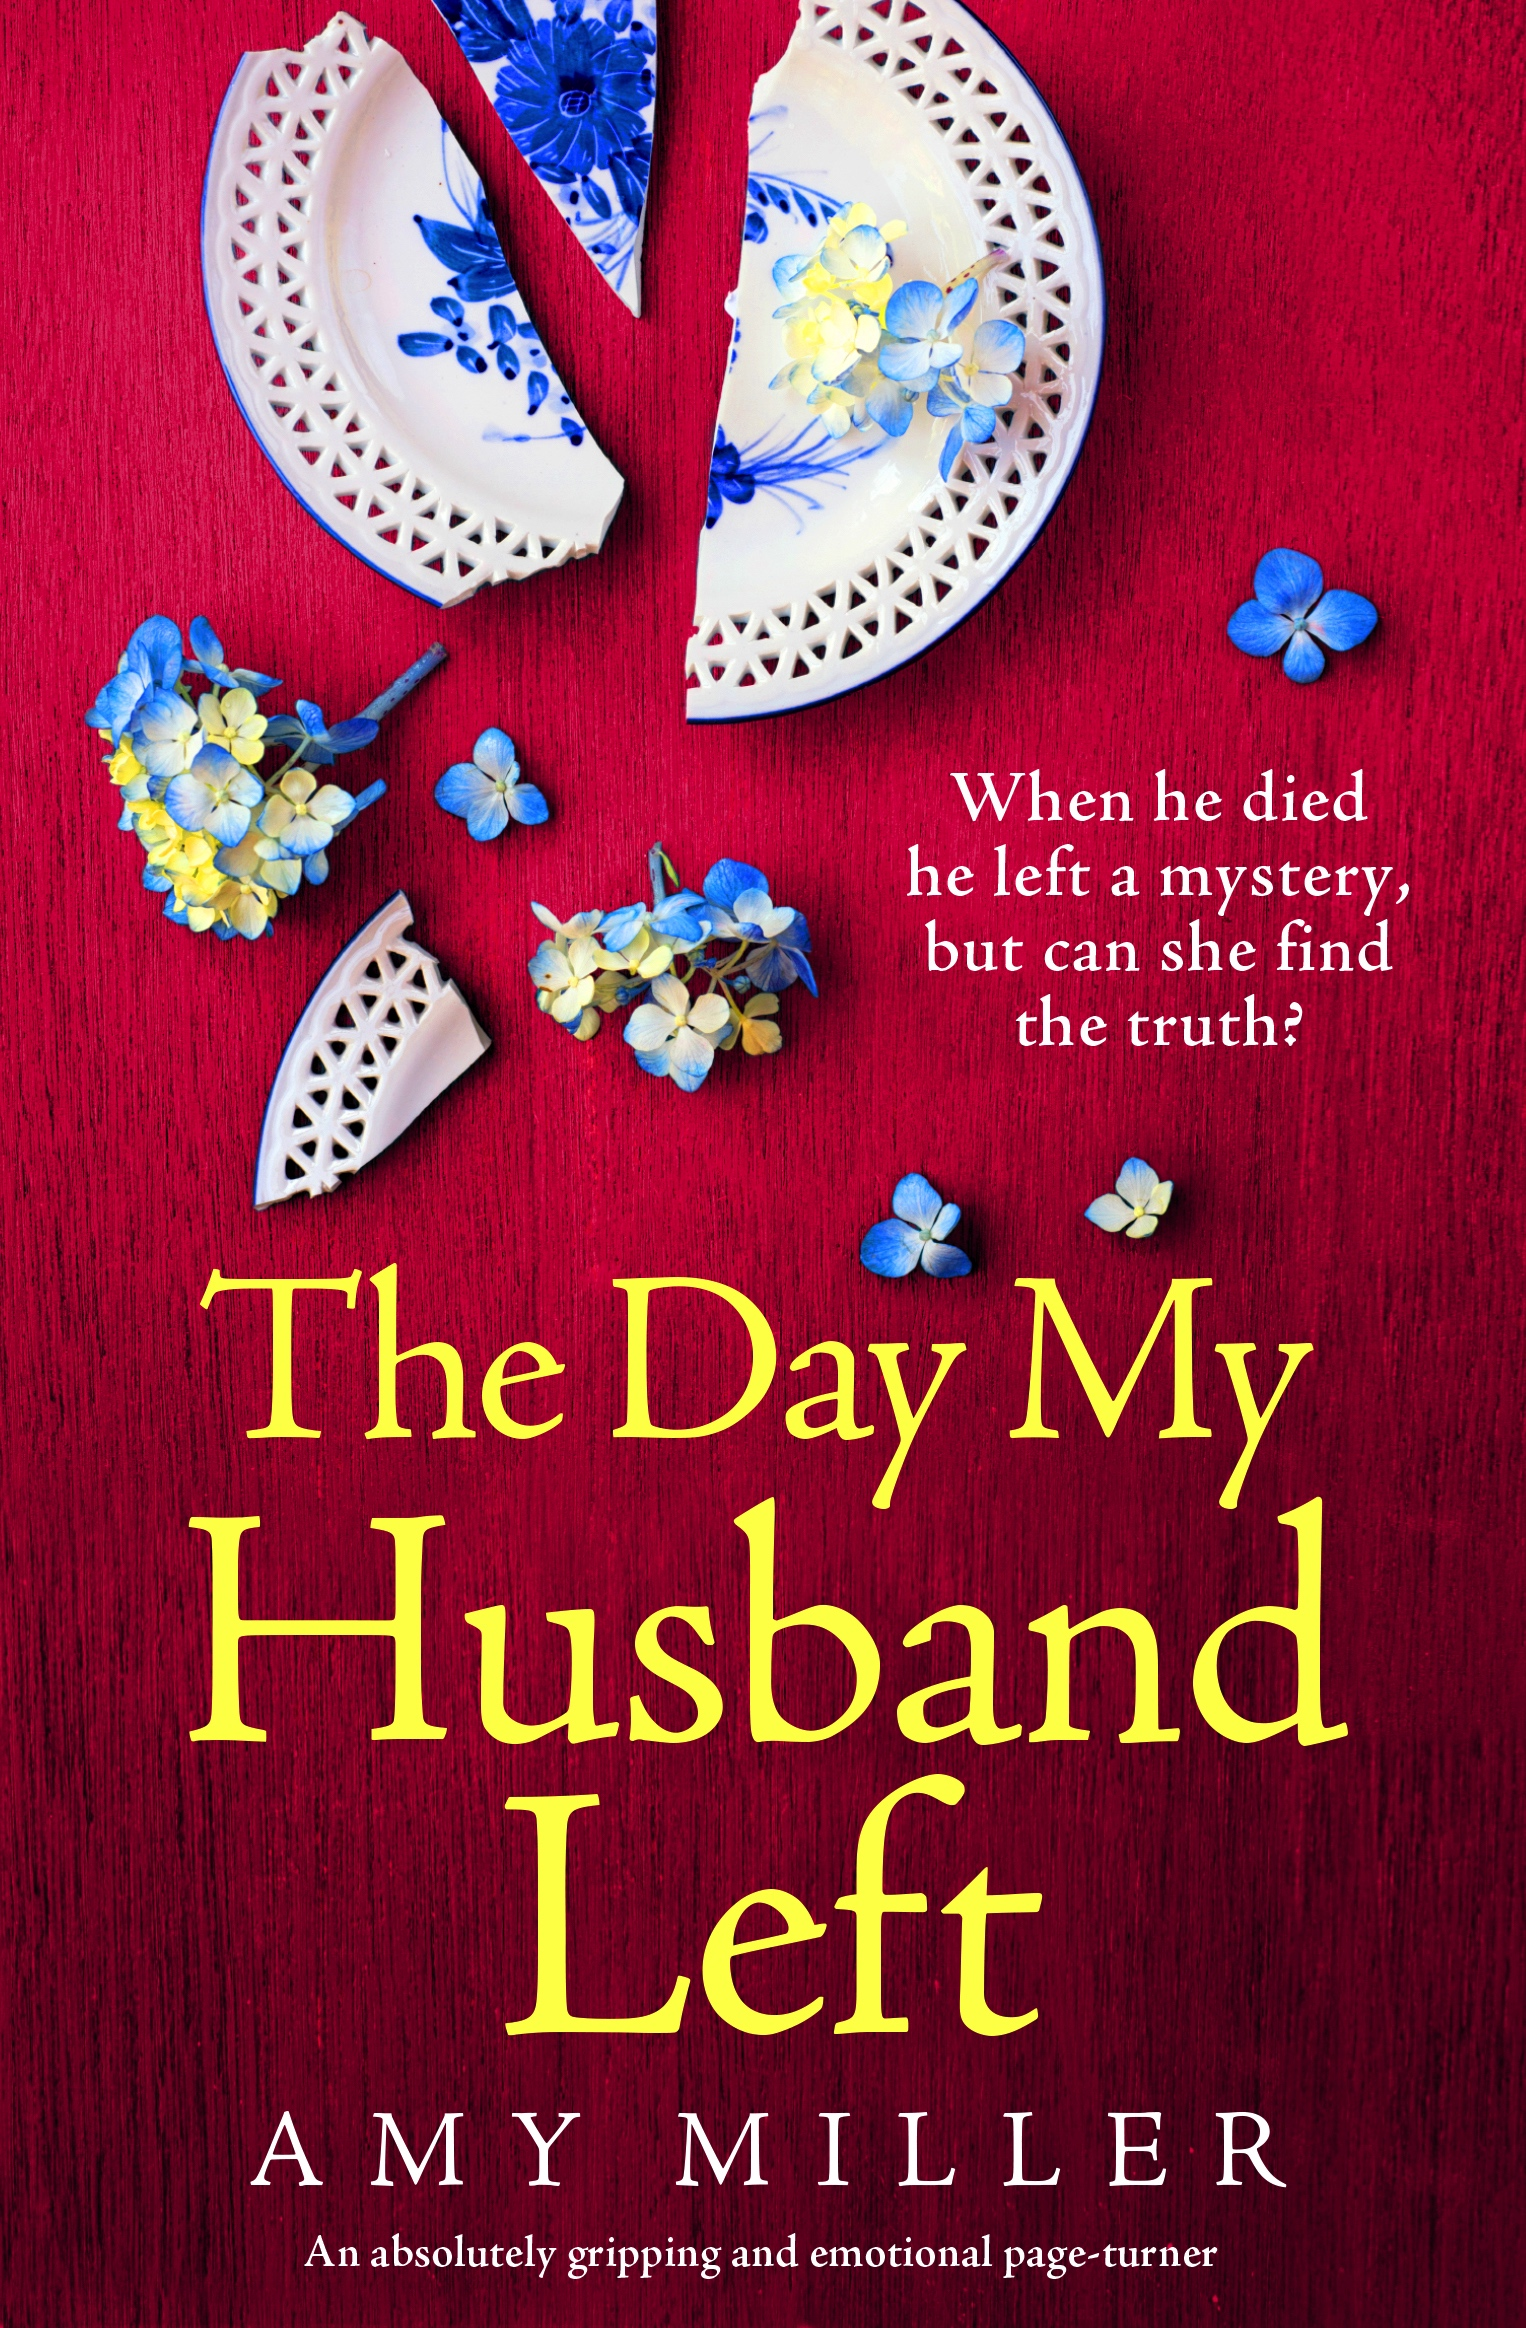 The Day My Husband Left book cover